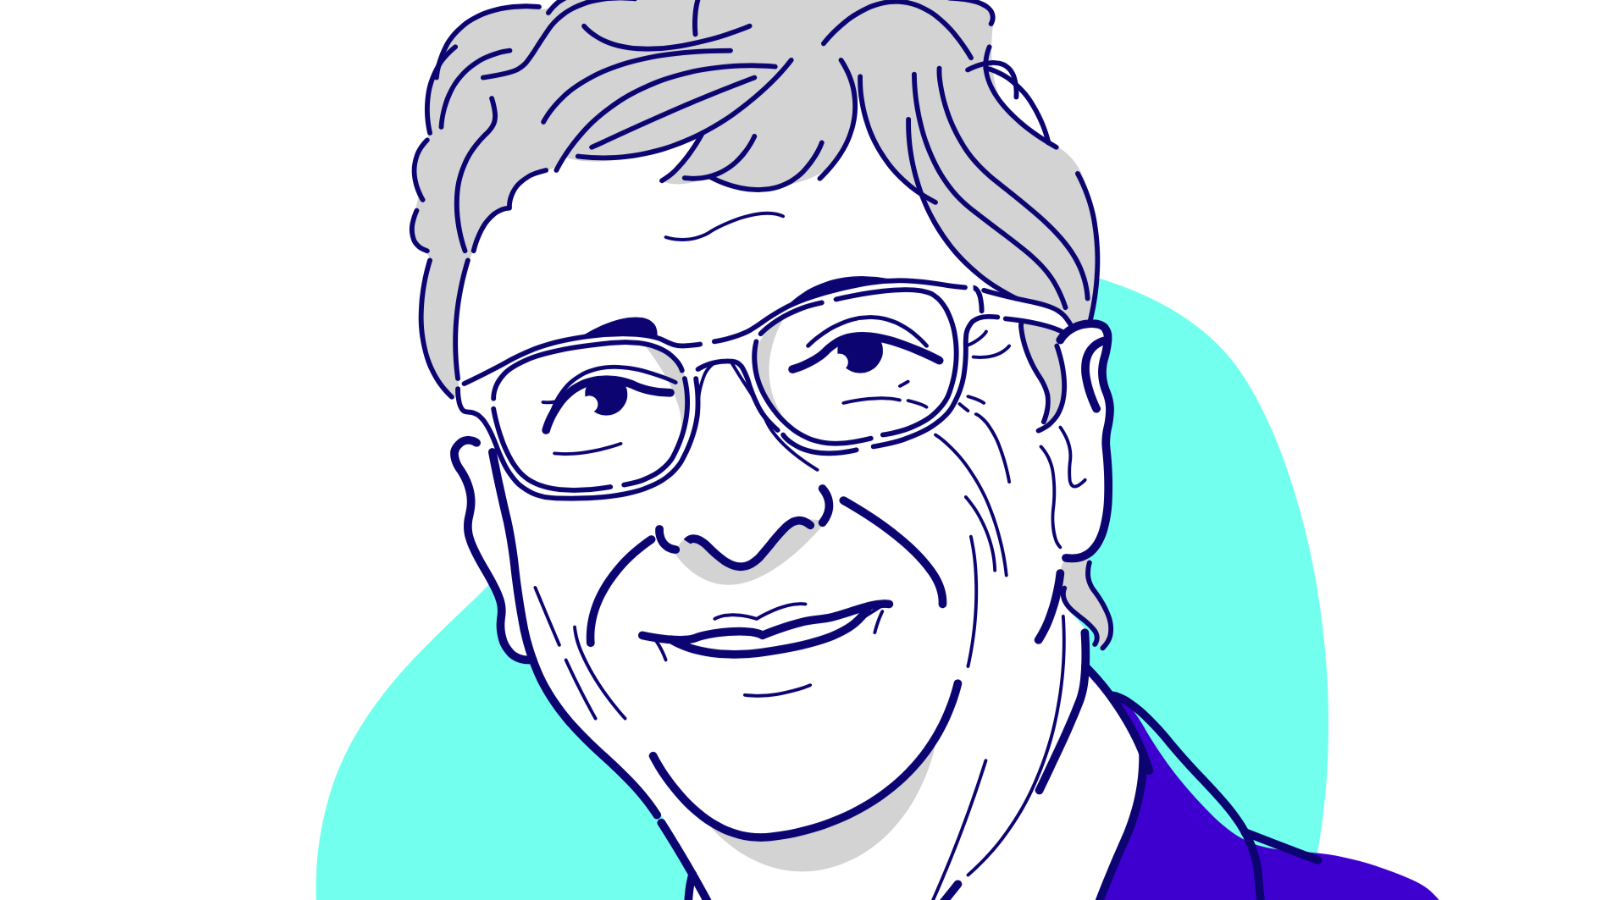 Bill Gates says this is the major upside of the pandemic